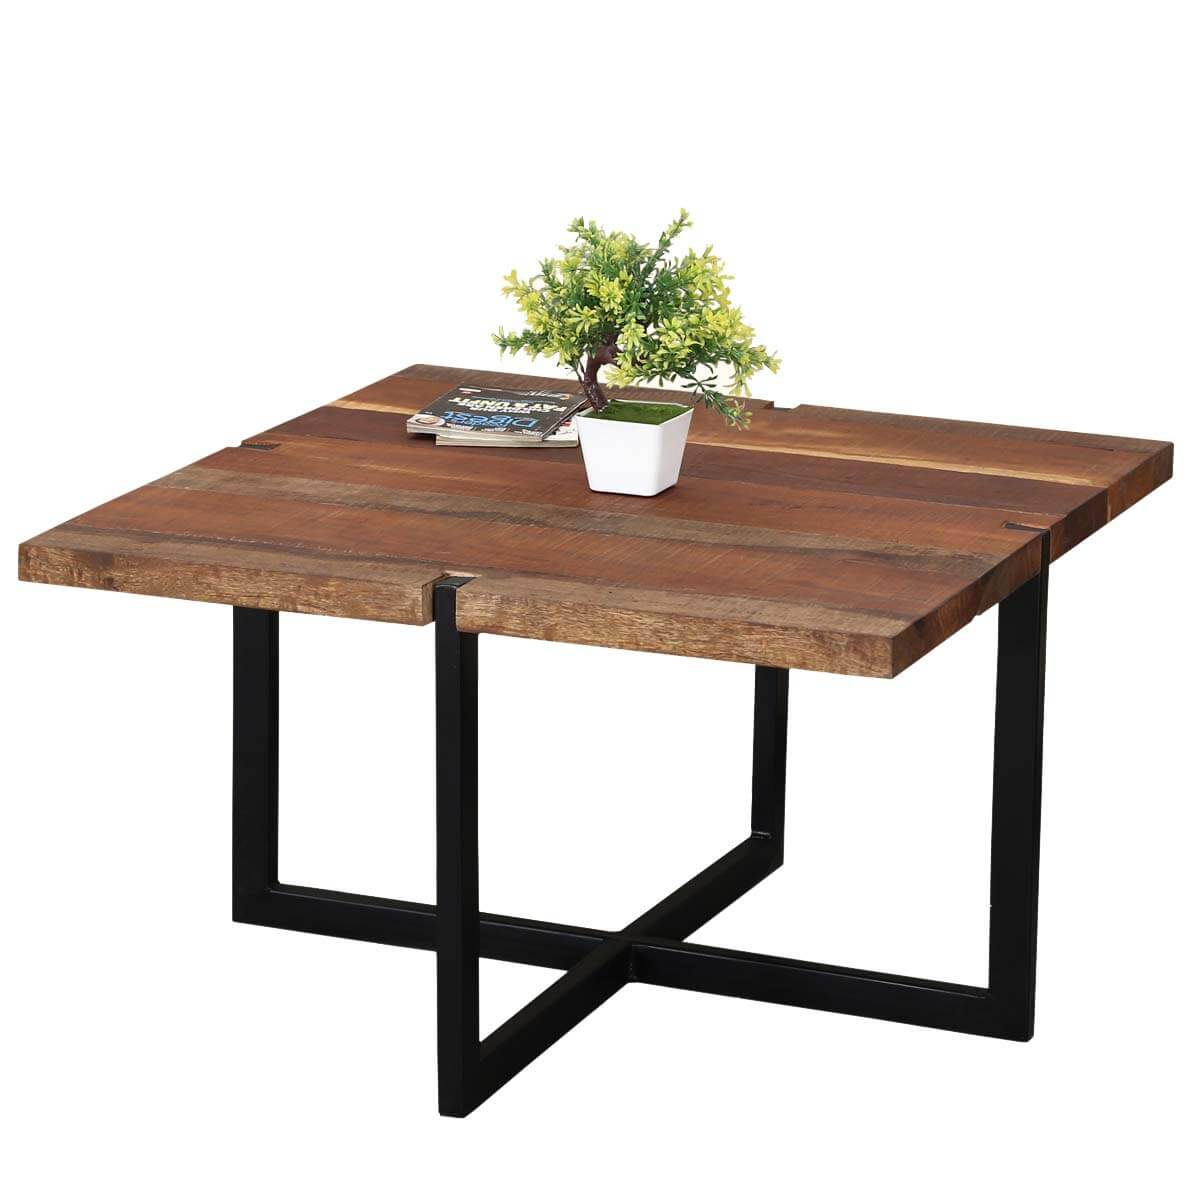 suffolk reclaimed wood iron square coffee table